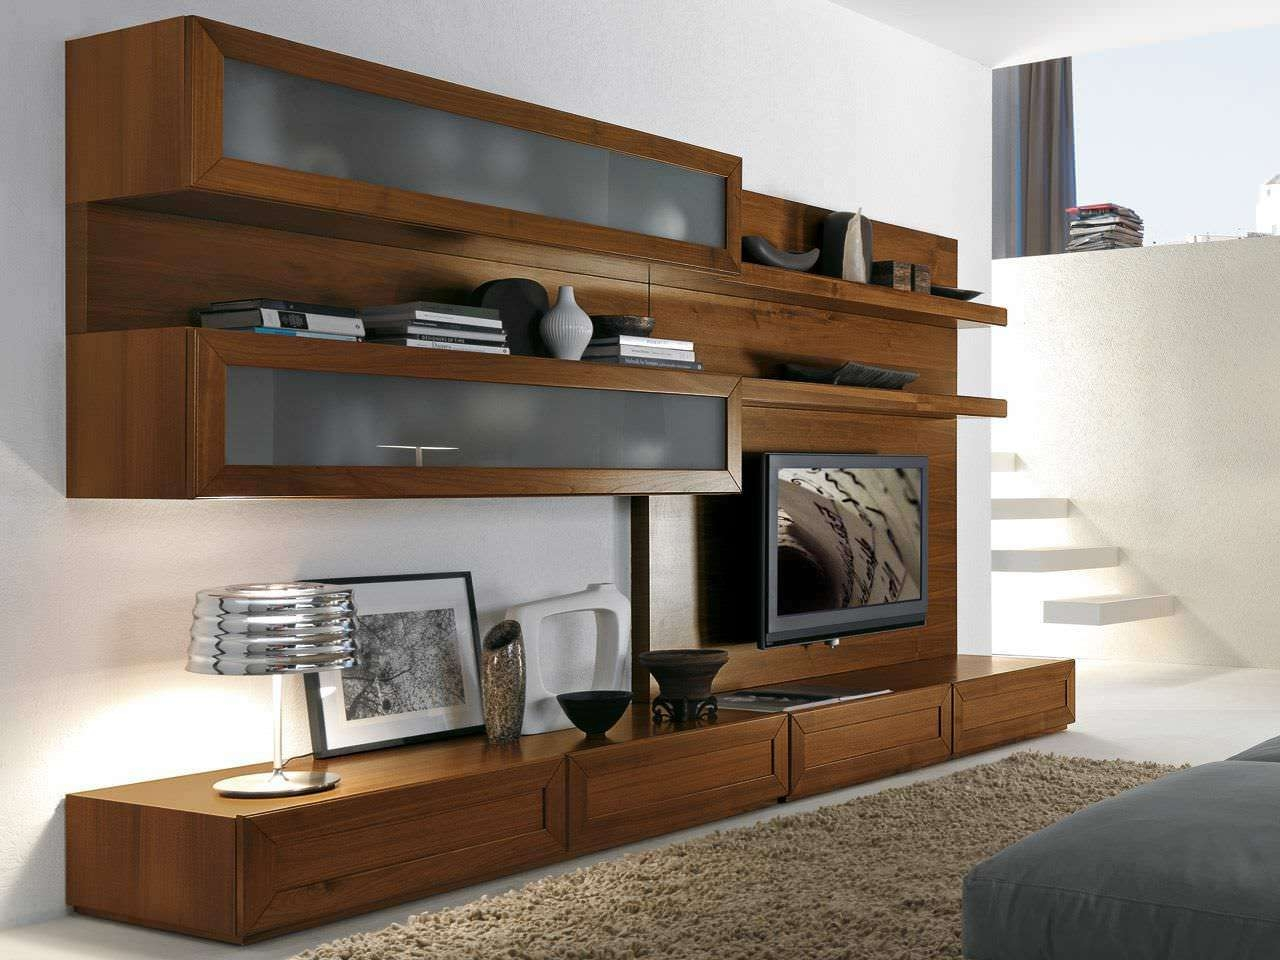 Extremely Strong Tv Cabinet With Doors In Elegant Look | All For Funky Tv Cabinets (View 2 of 20)